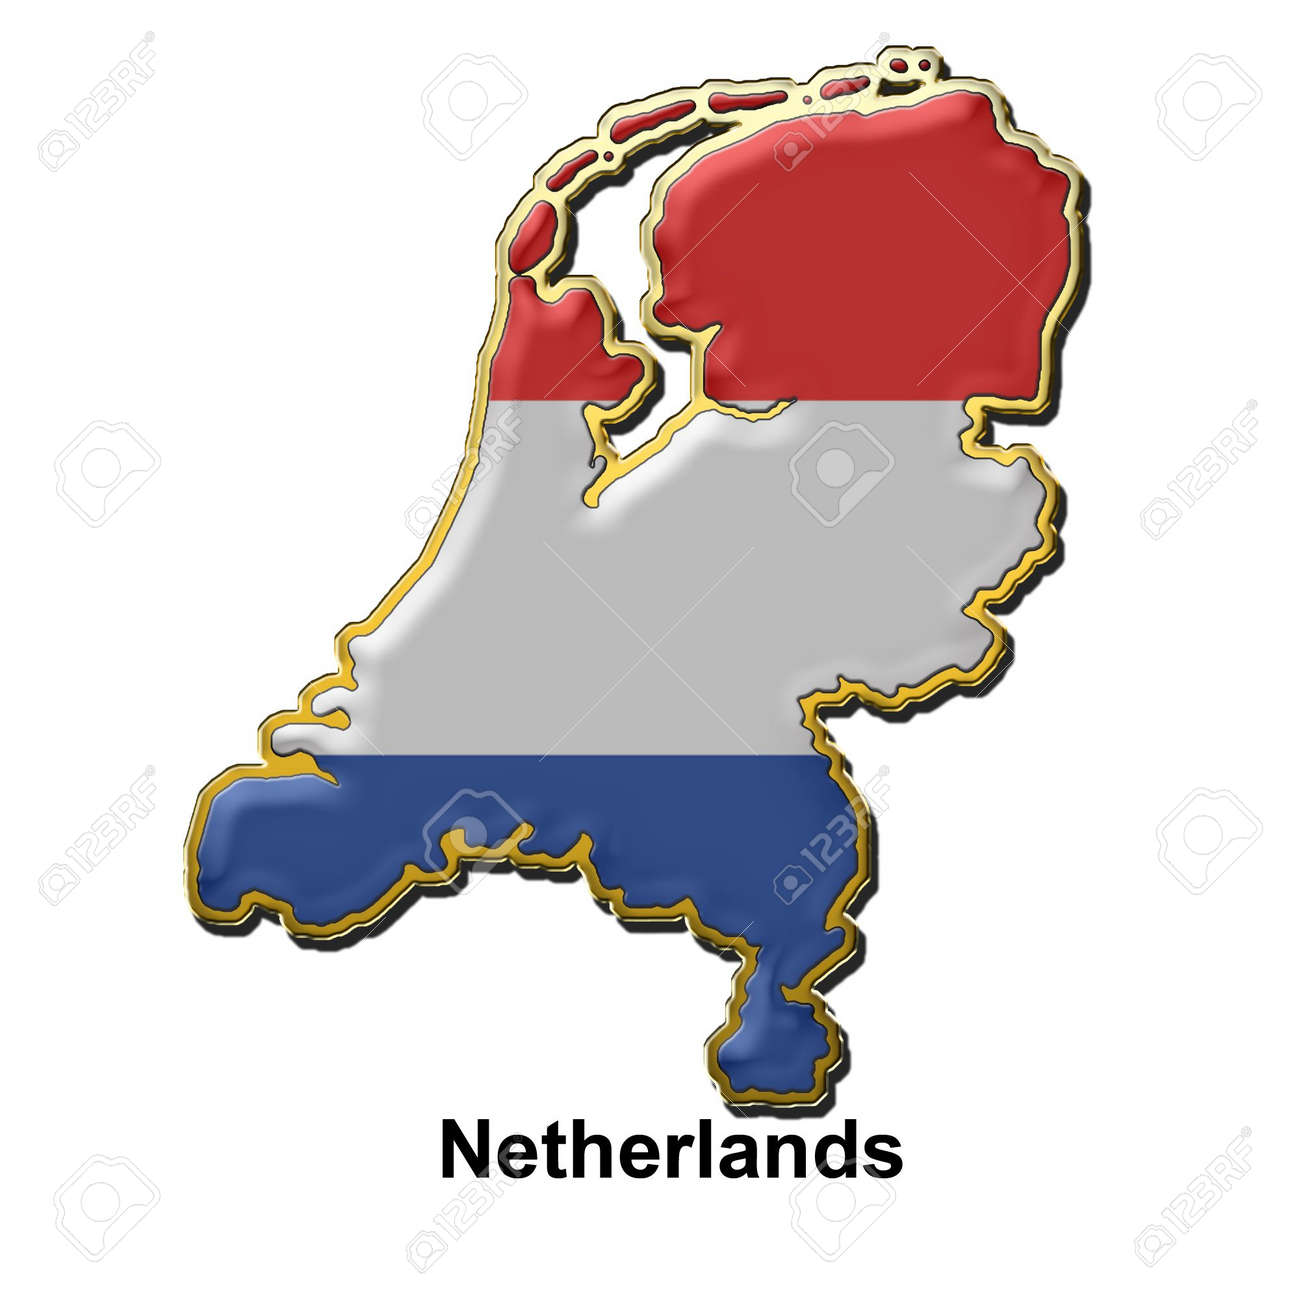 map shaped flag of Holland in the style of a metal pin badge Stock Photo - 2933413